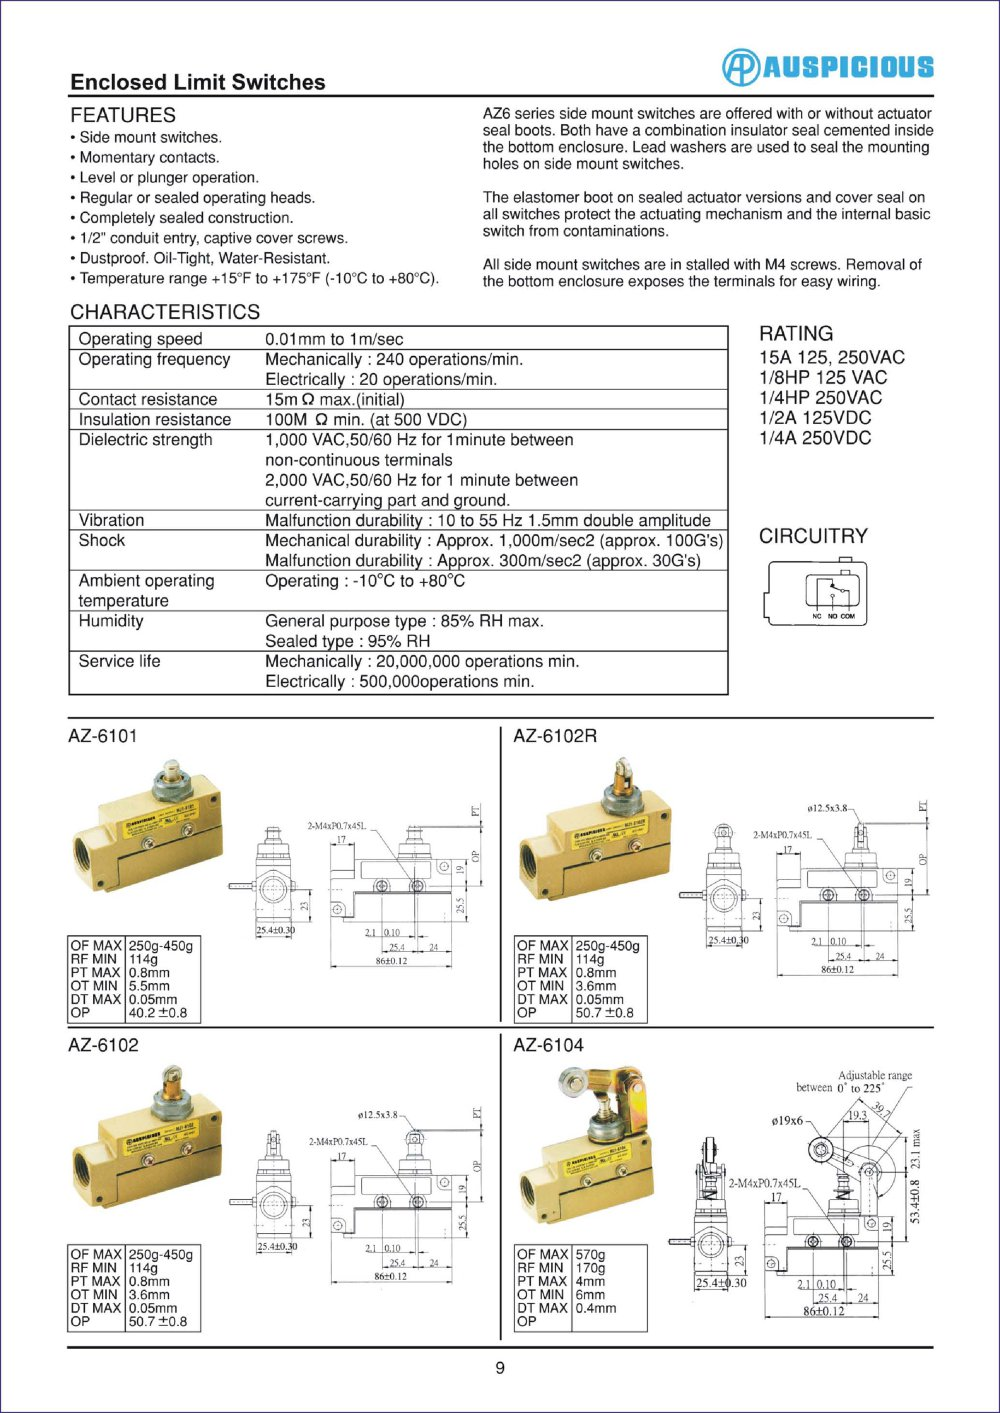 Enclosed Limit Switches - 1 / 1 Pages